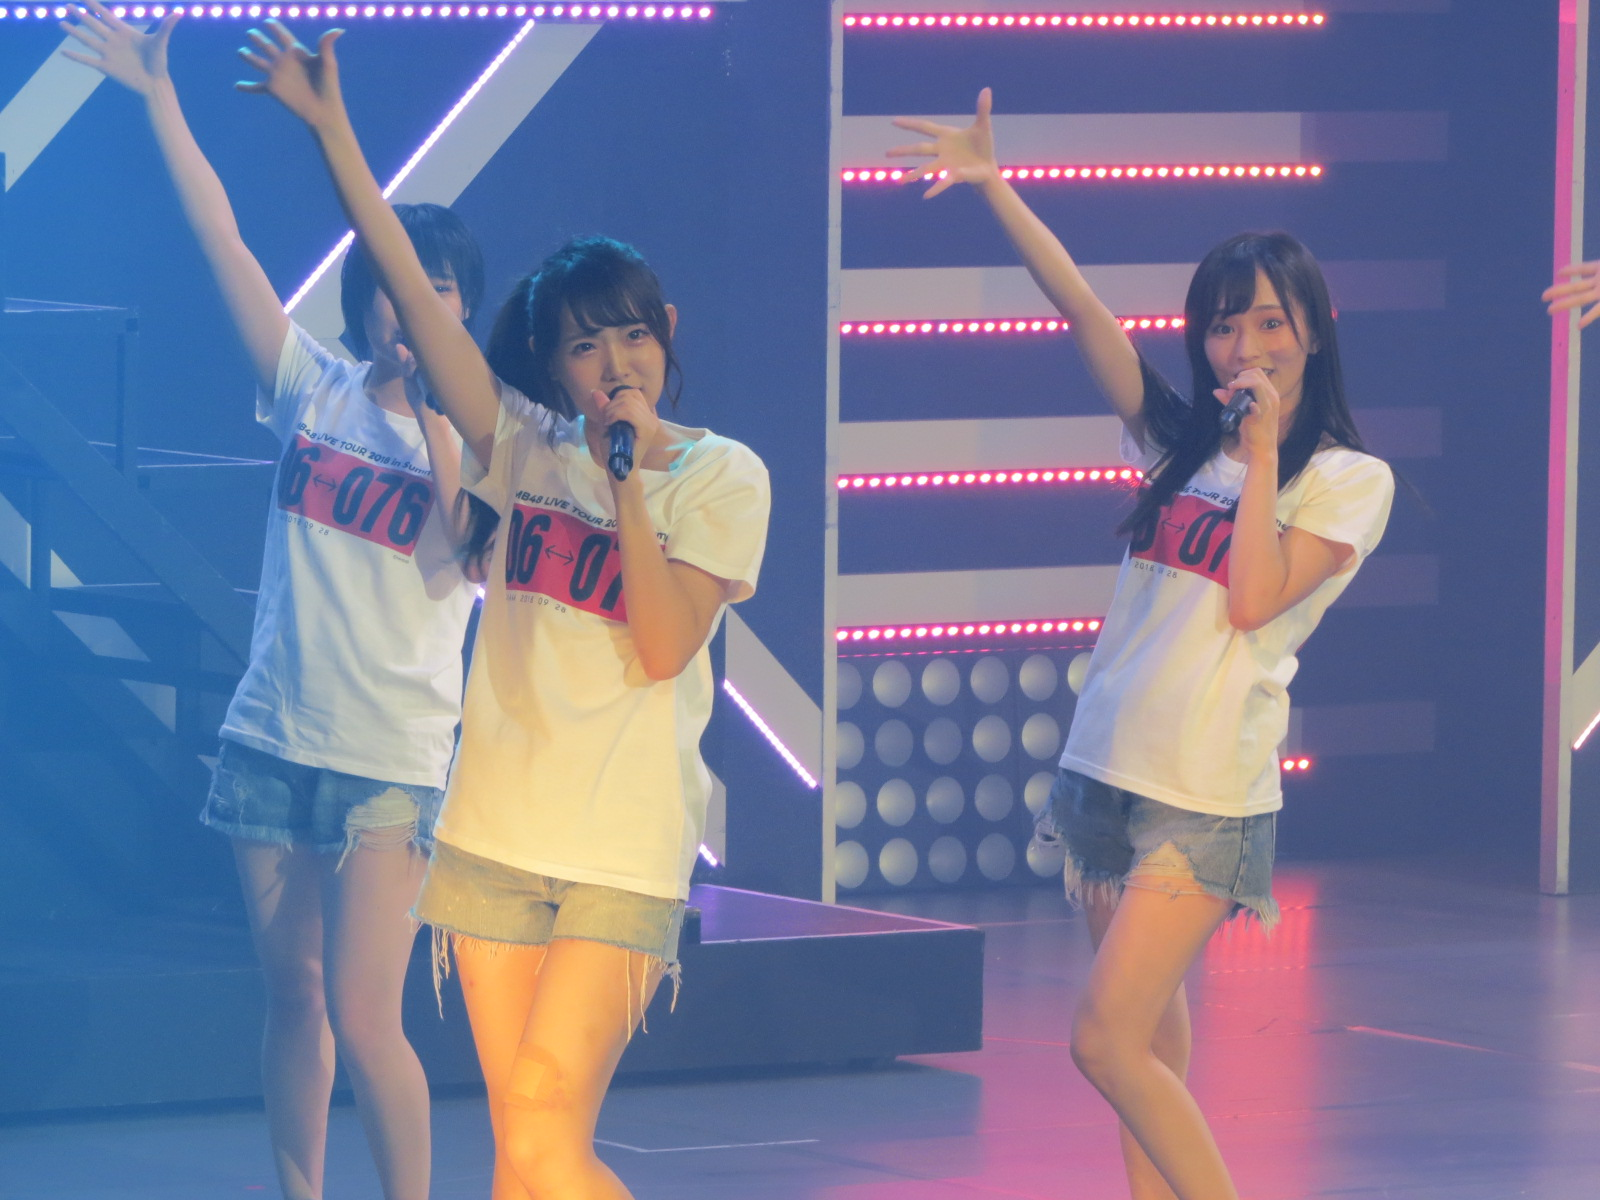 NMB48 LIVE TOUR 2018 in Summer・石川公演の画像-110